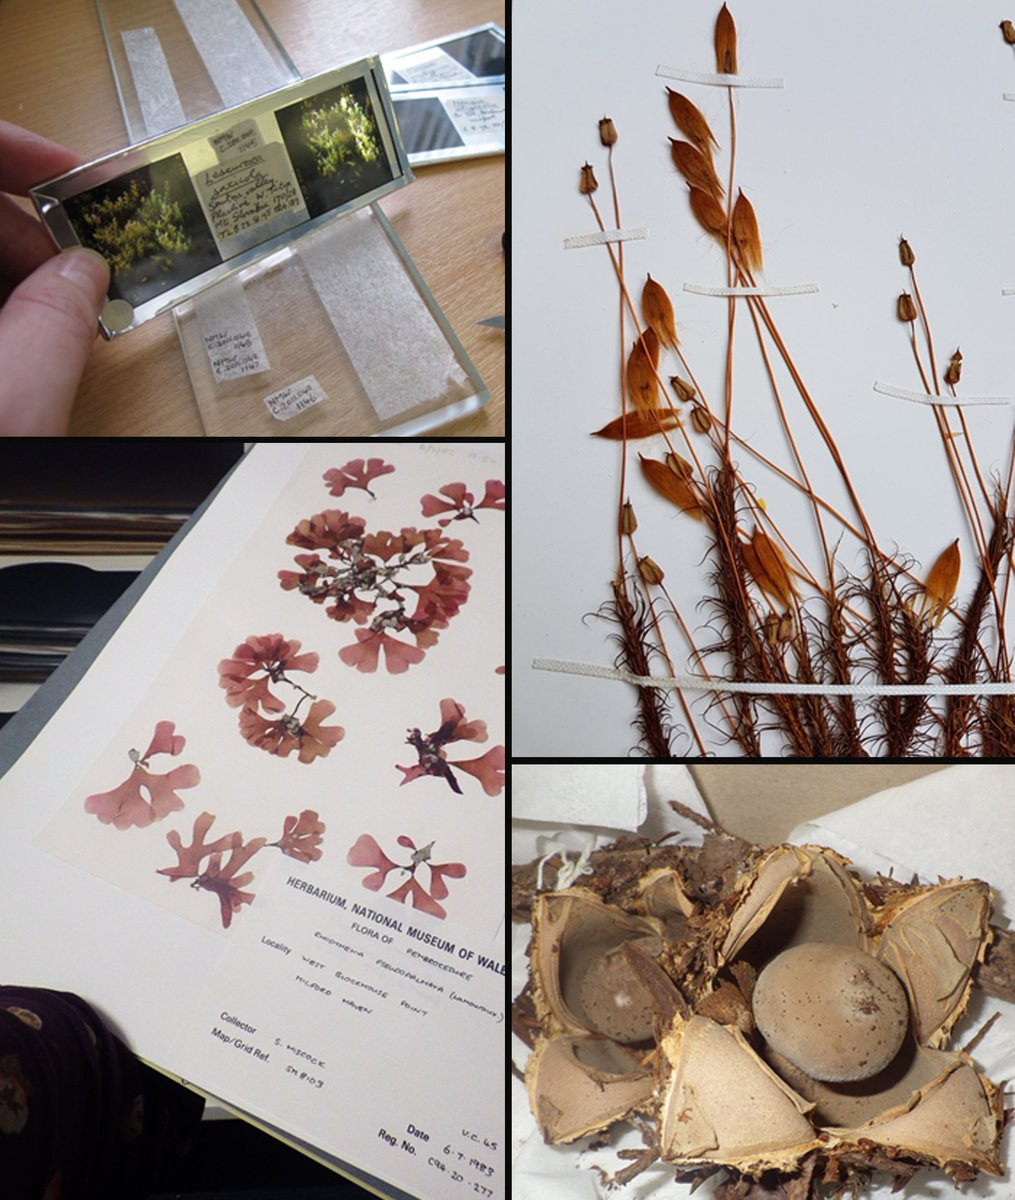 The botany collections @Museum_Cardiff don't just cover ferns and flowers. There are also mosses, fungi, seaweed and even 3D slides. Each specimen is unique and extremely valuable to scientists studying changes in our climate and wildlife. #BotanicMonday <br>http://pic.twitter.com/H9UUZCCmwo